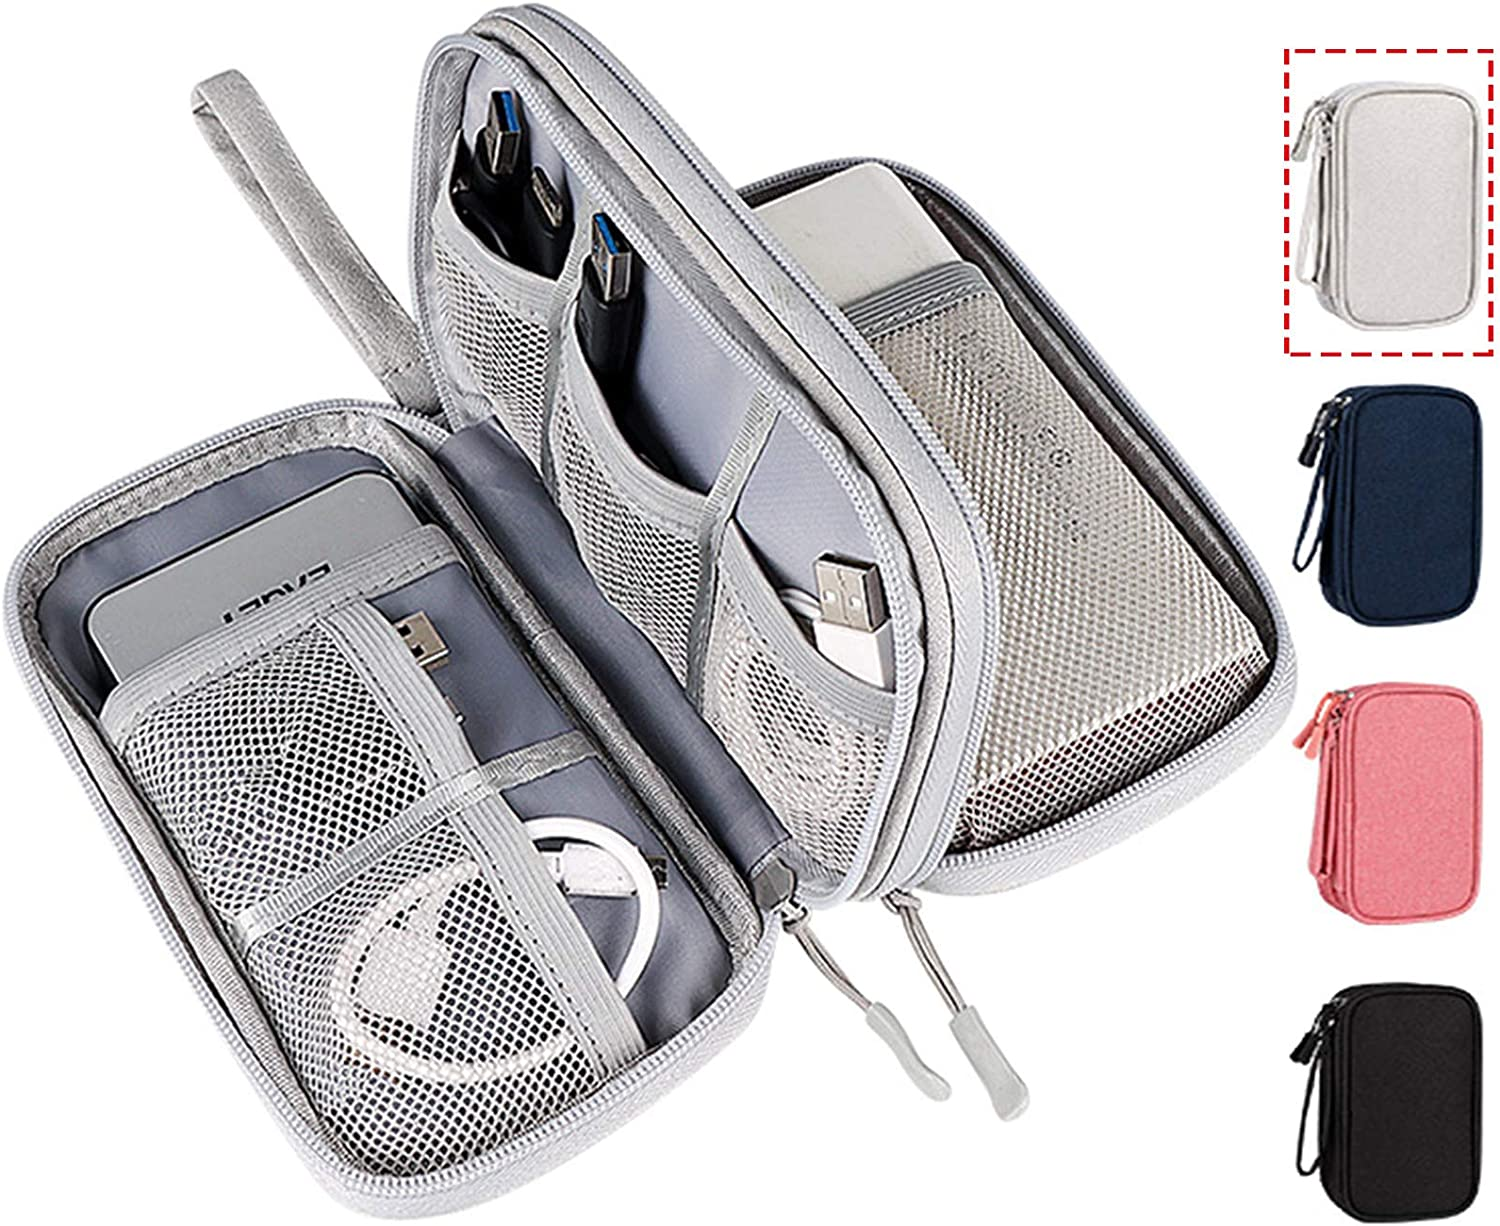 Electronic Organizer Bag, Waterproof Portable Electronic Organizer Travel Accessories Cable Bag Universal Cord Storage Case for Cable/Cord Storage, Charging Cable, Cell Phone, Power Bank, Kid's Pens